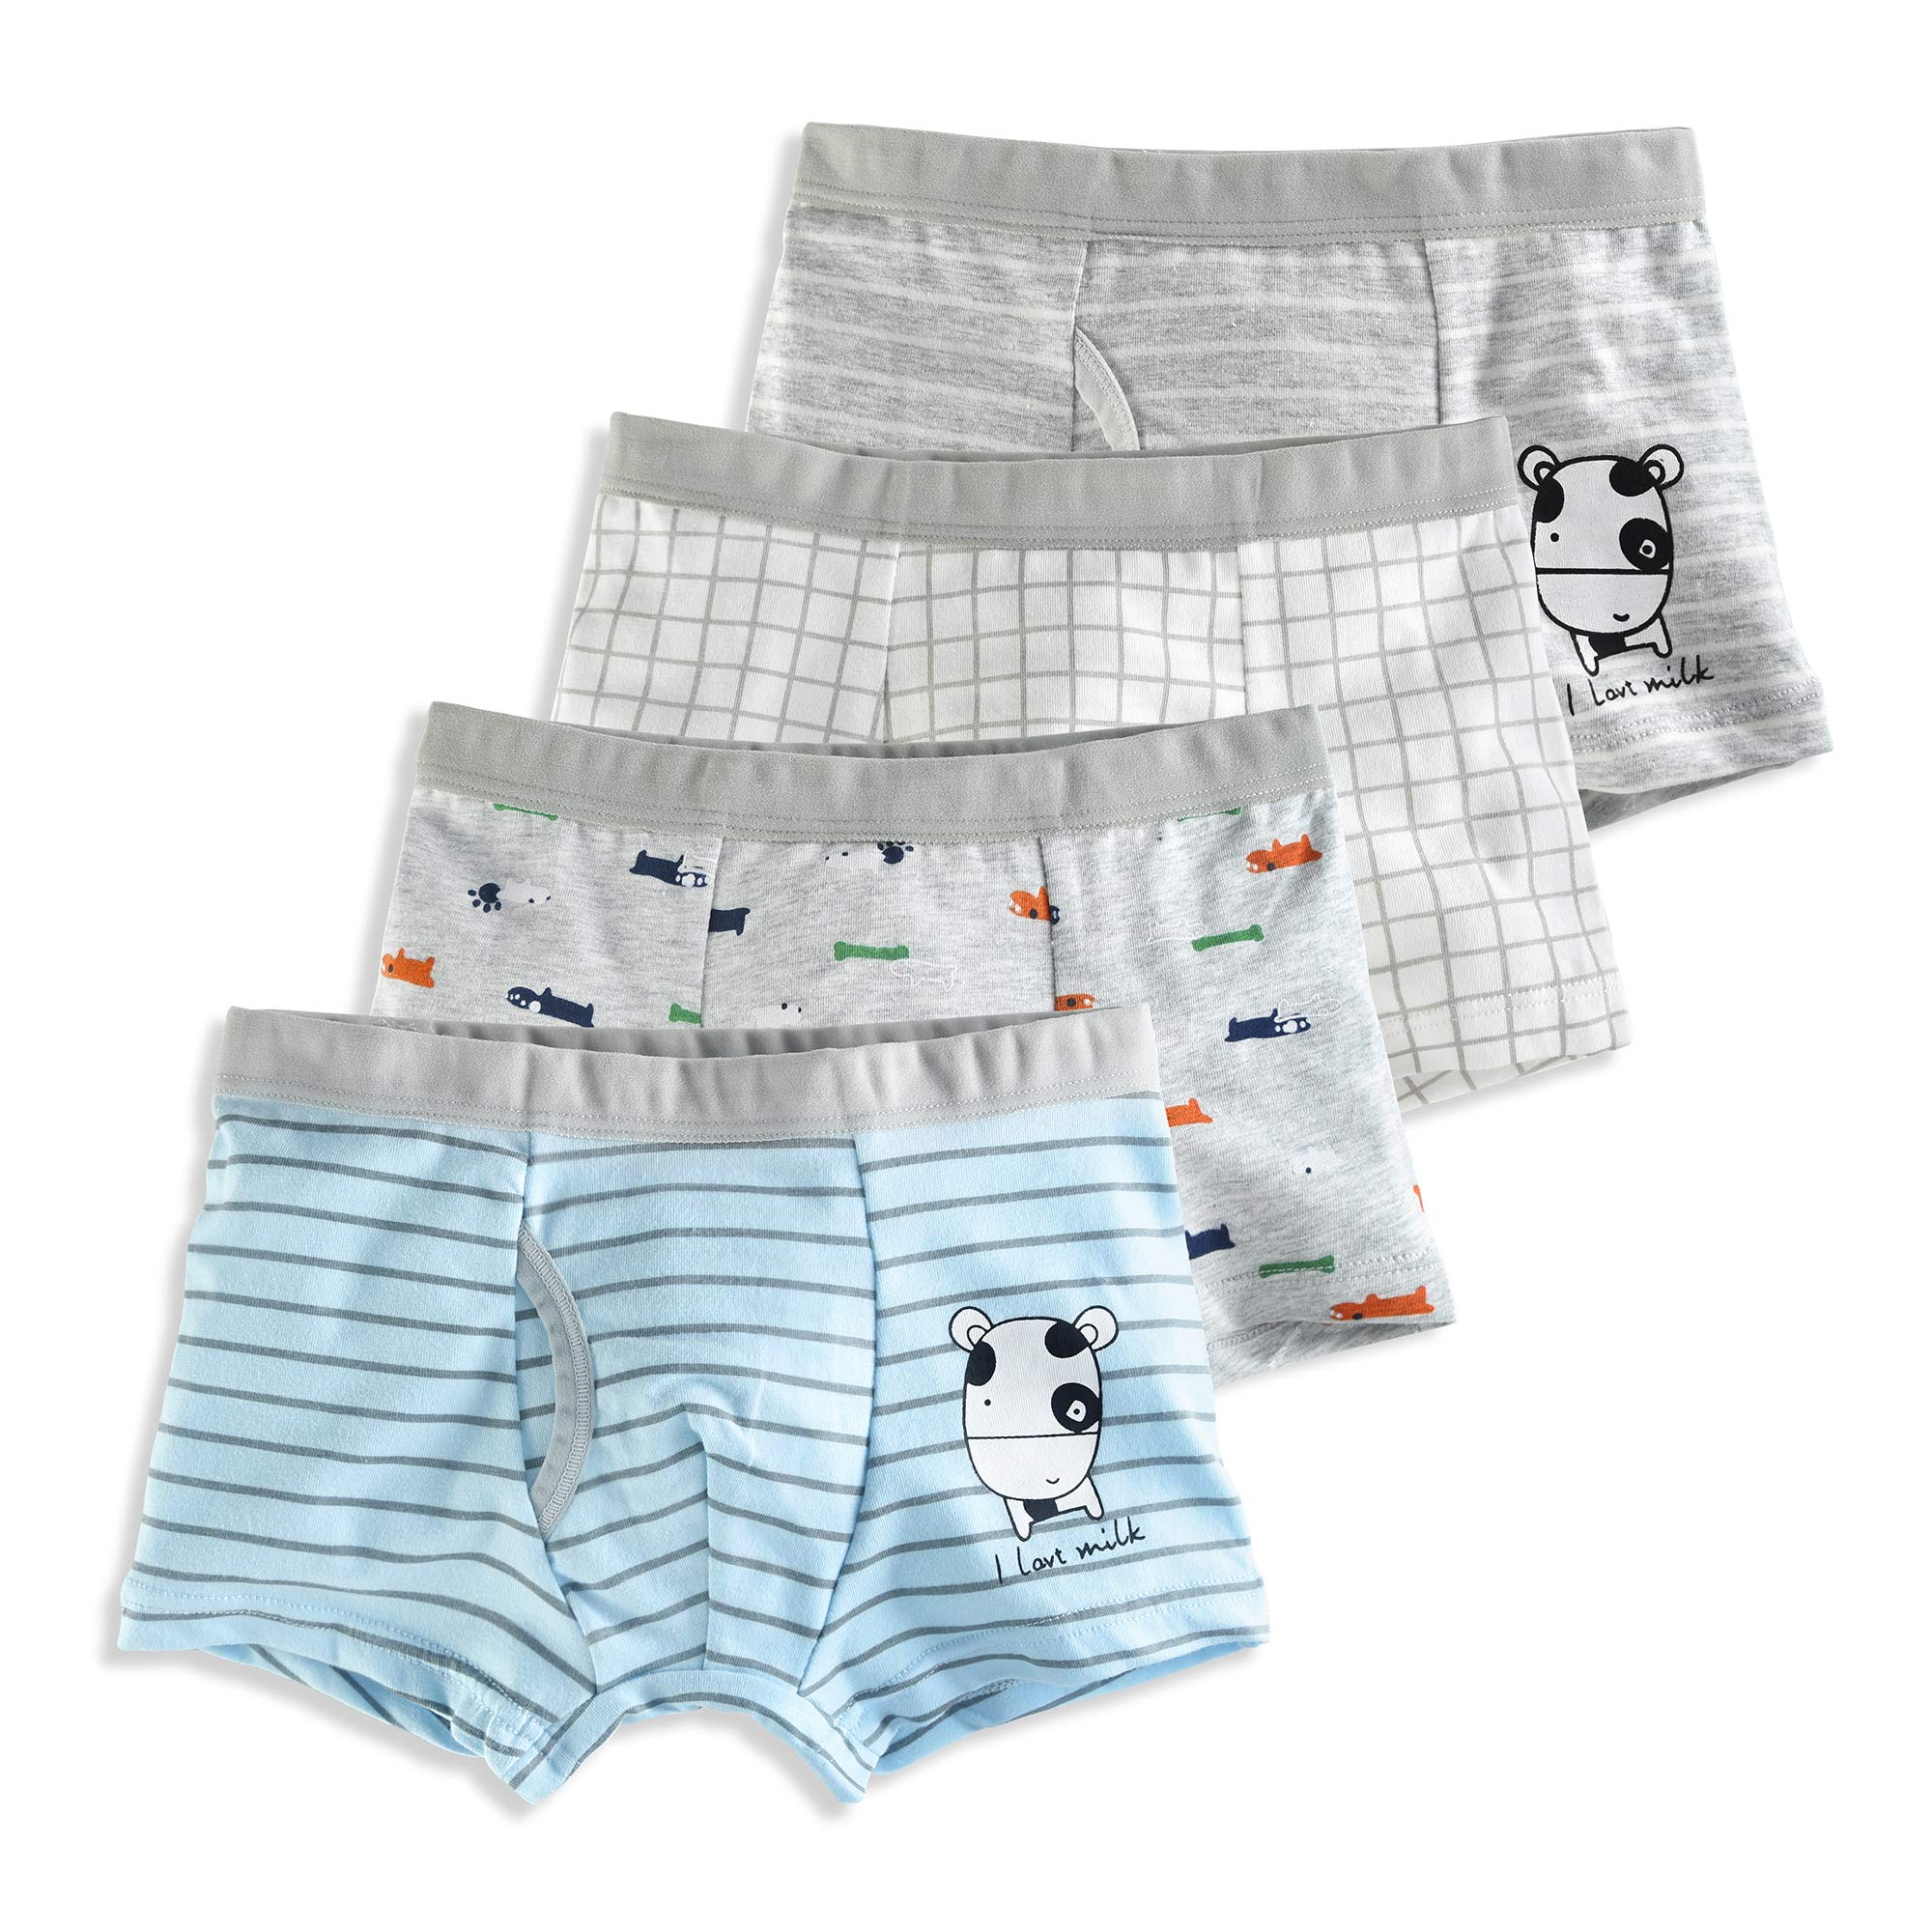 slaixiu Soft Cotton Kids Underwear Cartoon Boys Boxer Briefs 4-Pack (UW75-No.8-120)